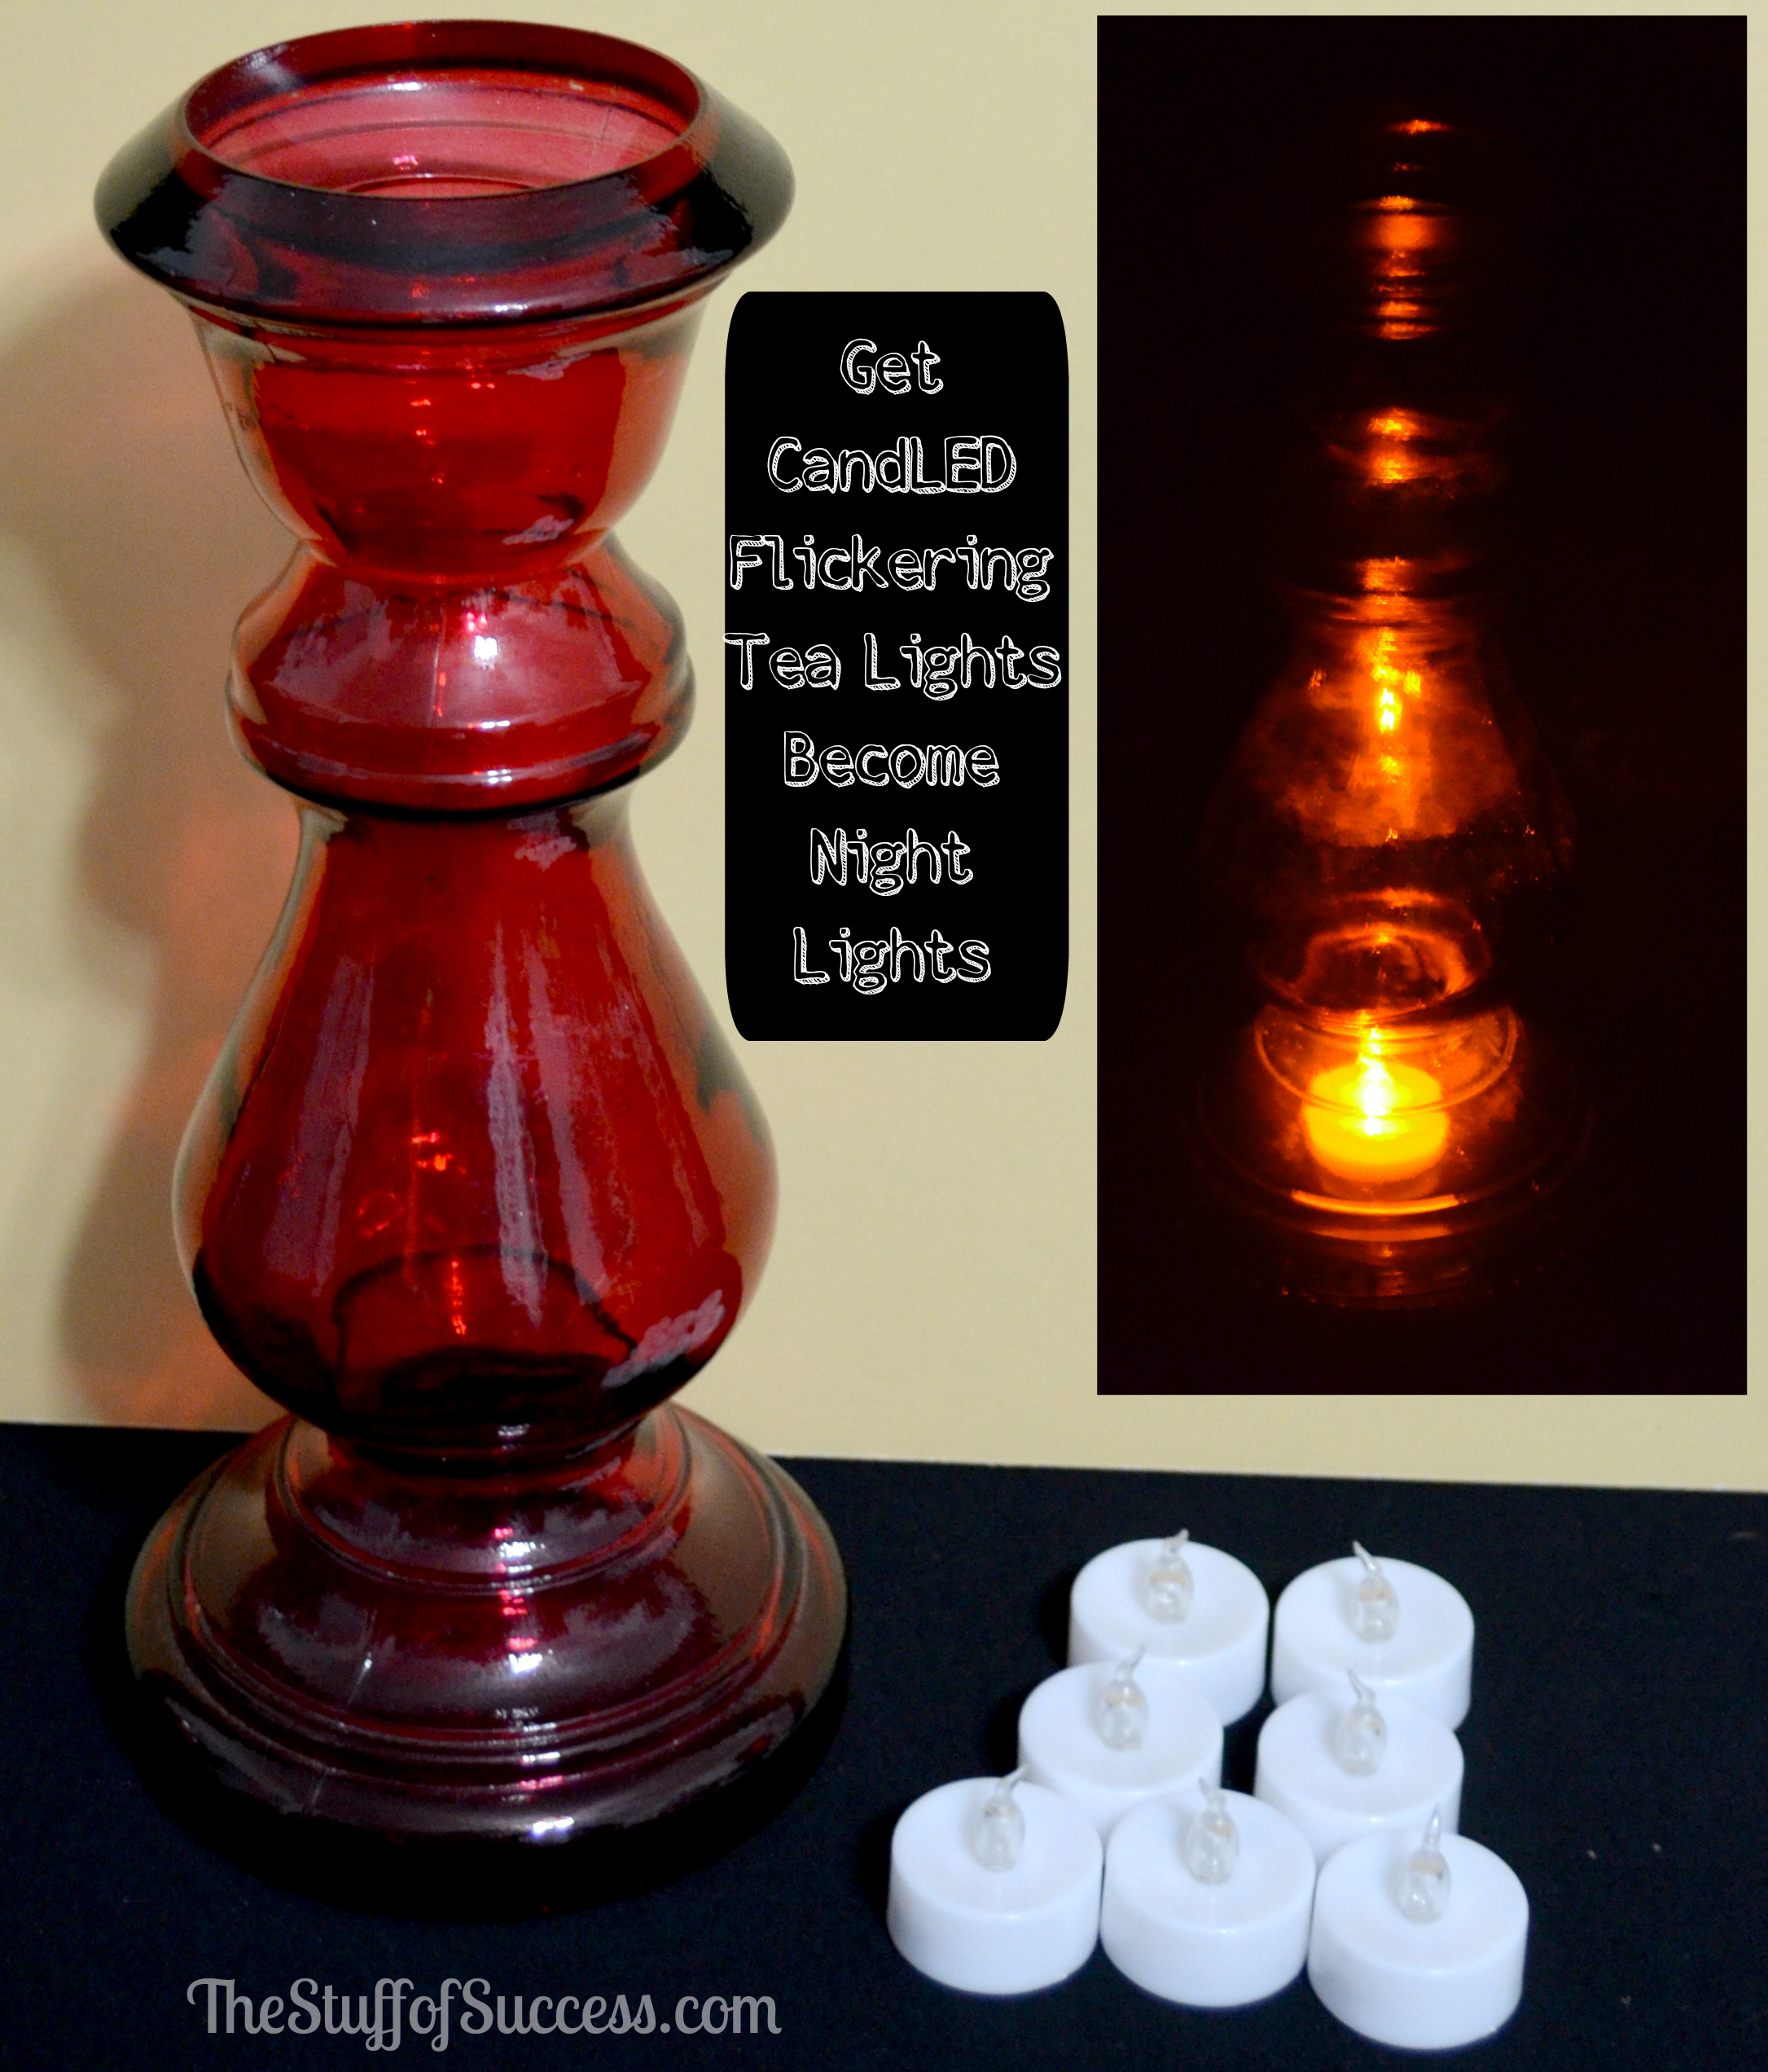 Get CandLED Flickering Tea Lights Become Night Lights